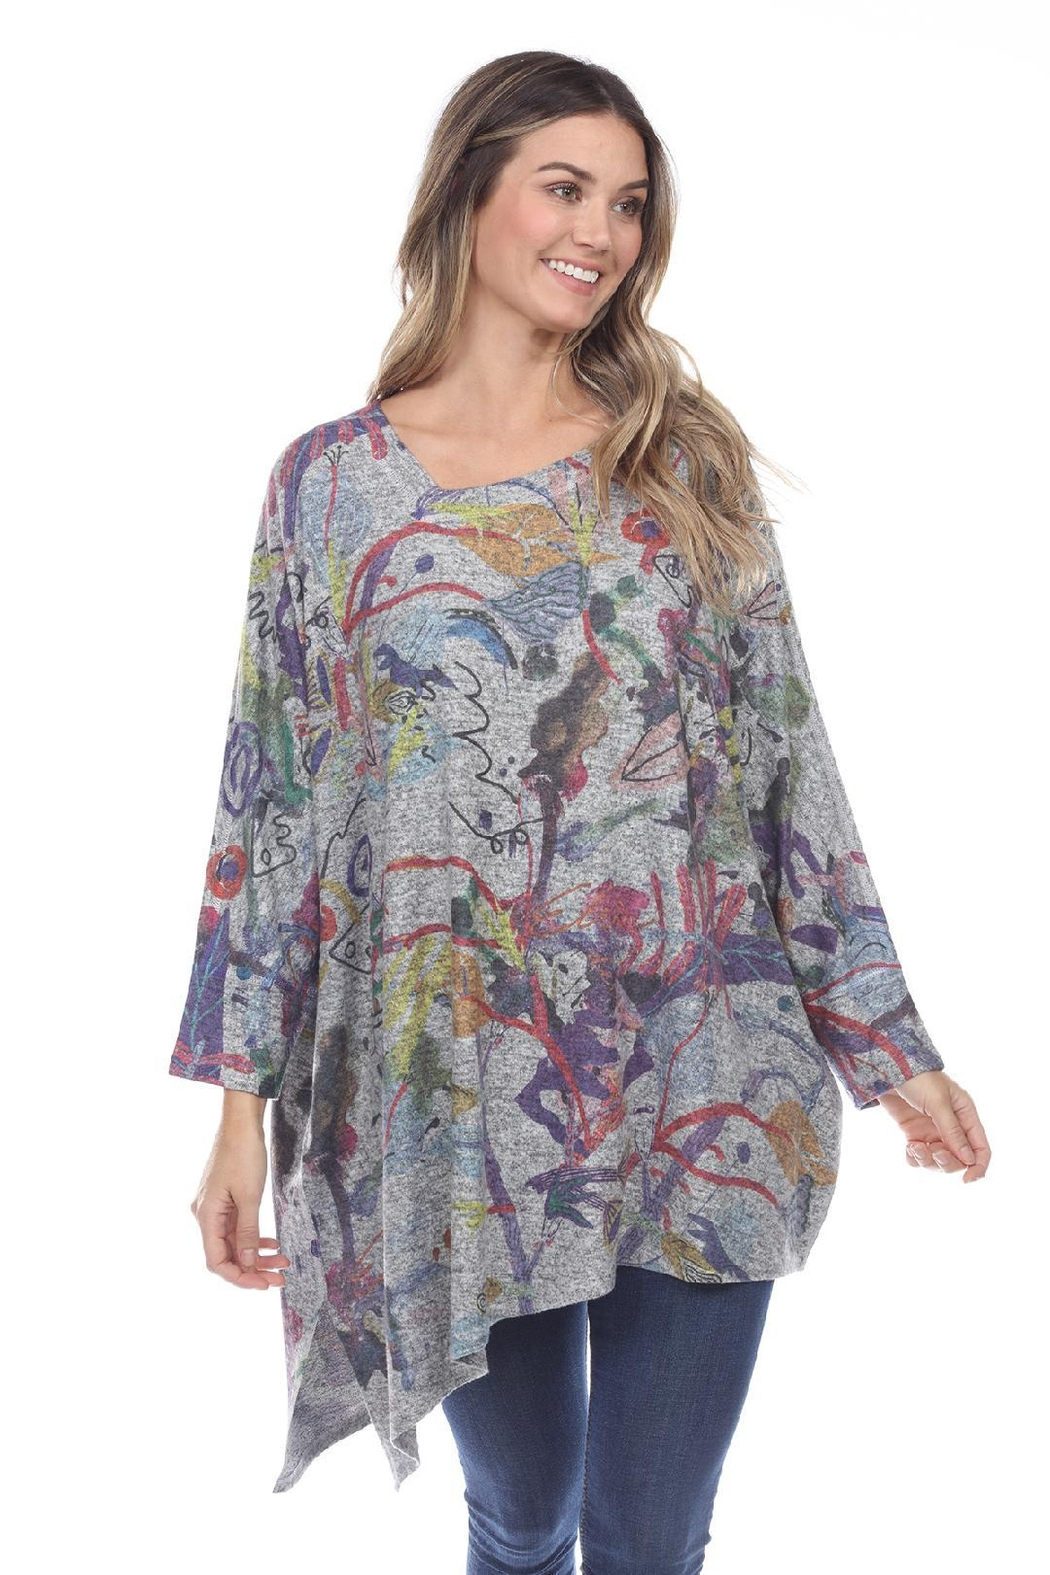 Inoah Colorful Boxy Top - Main Image